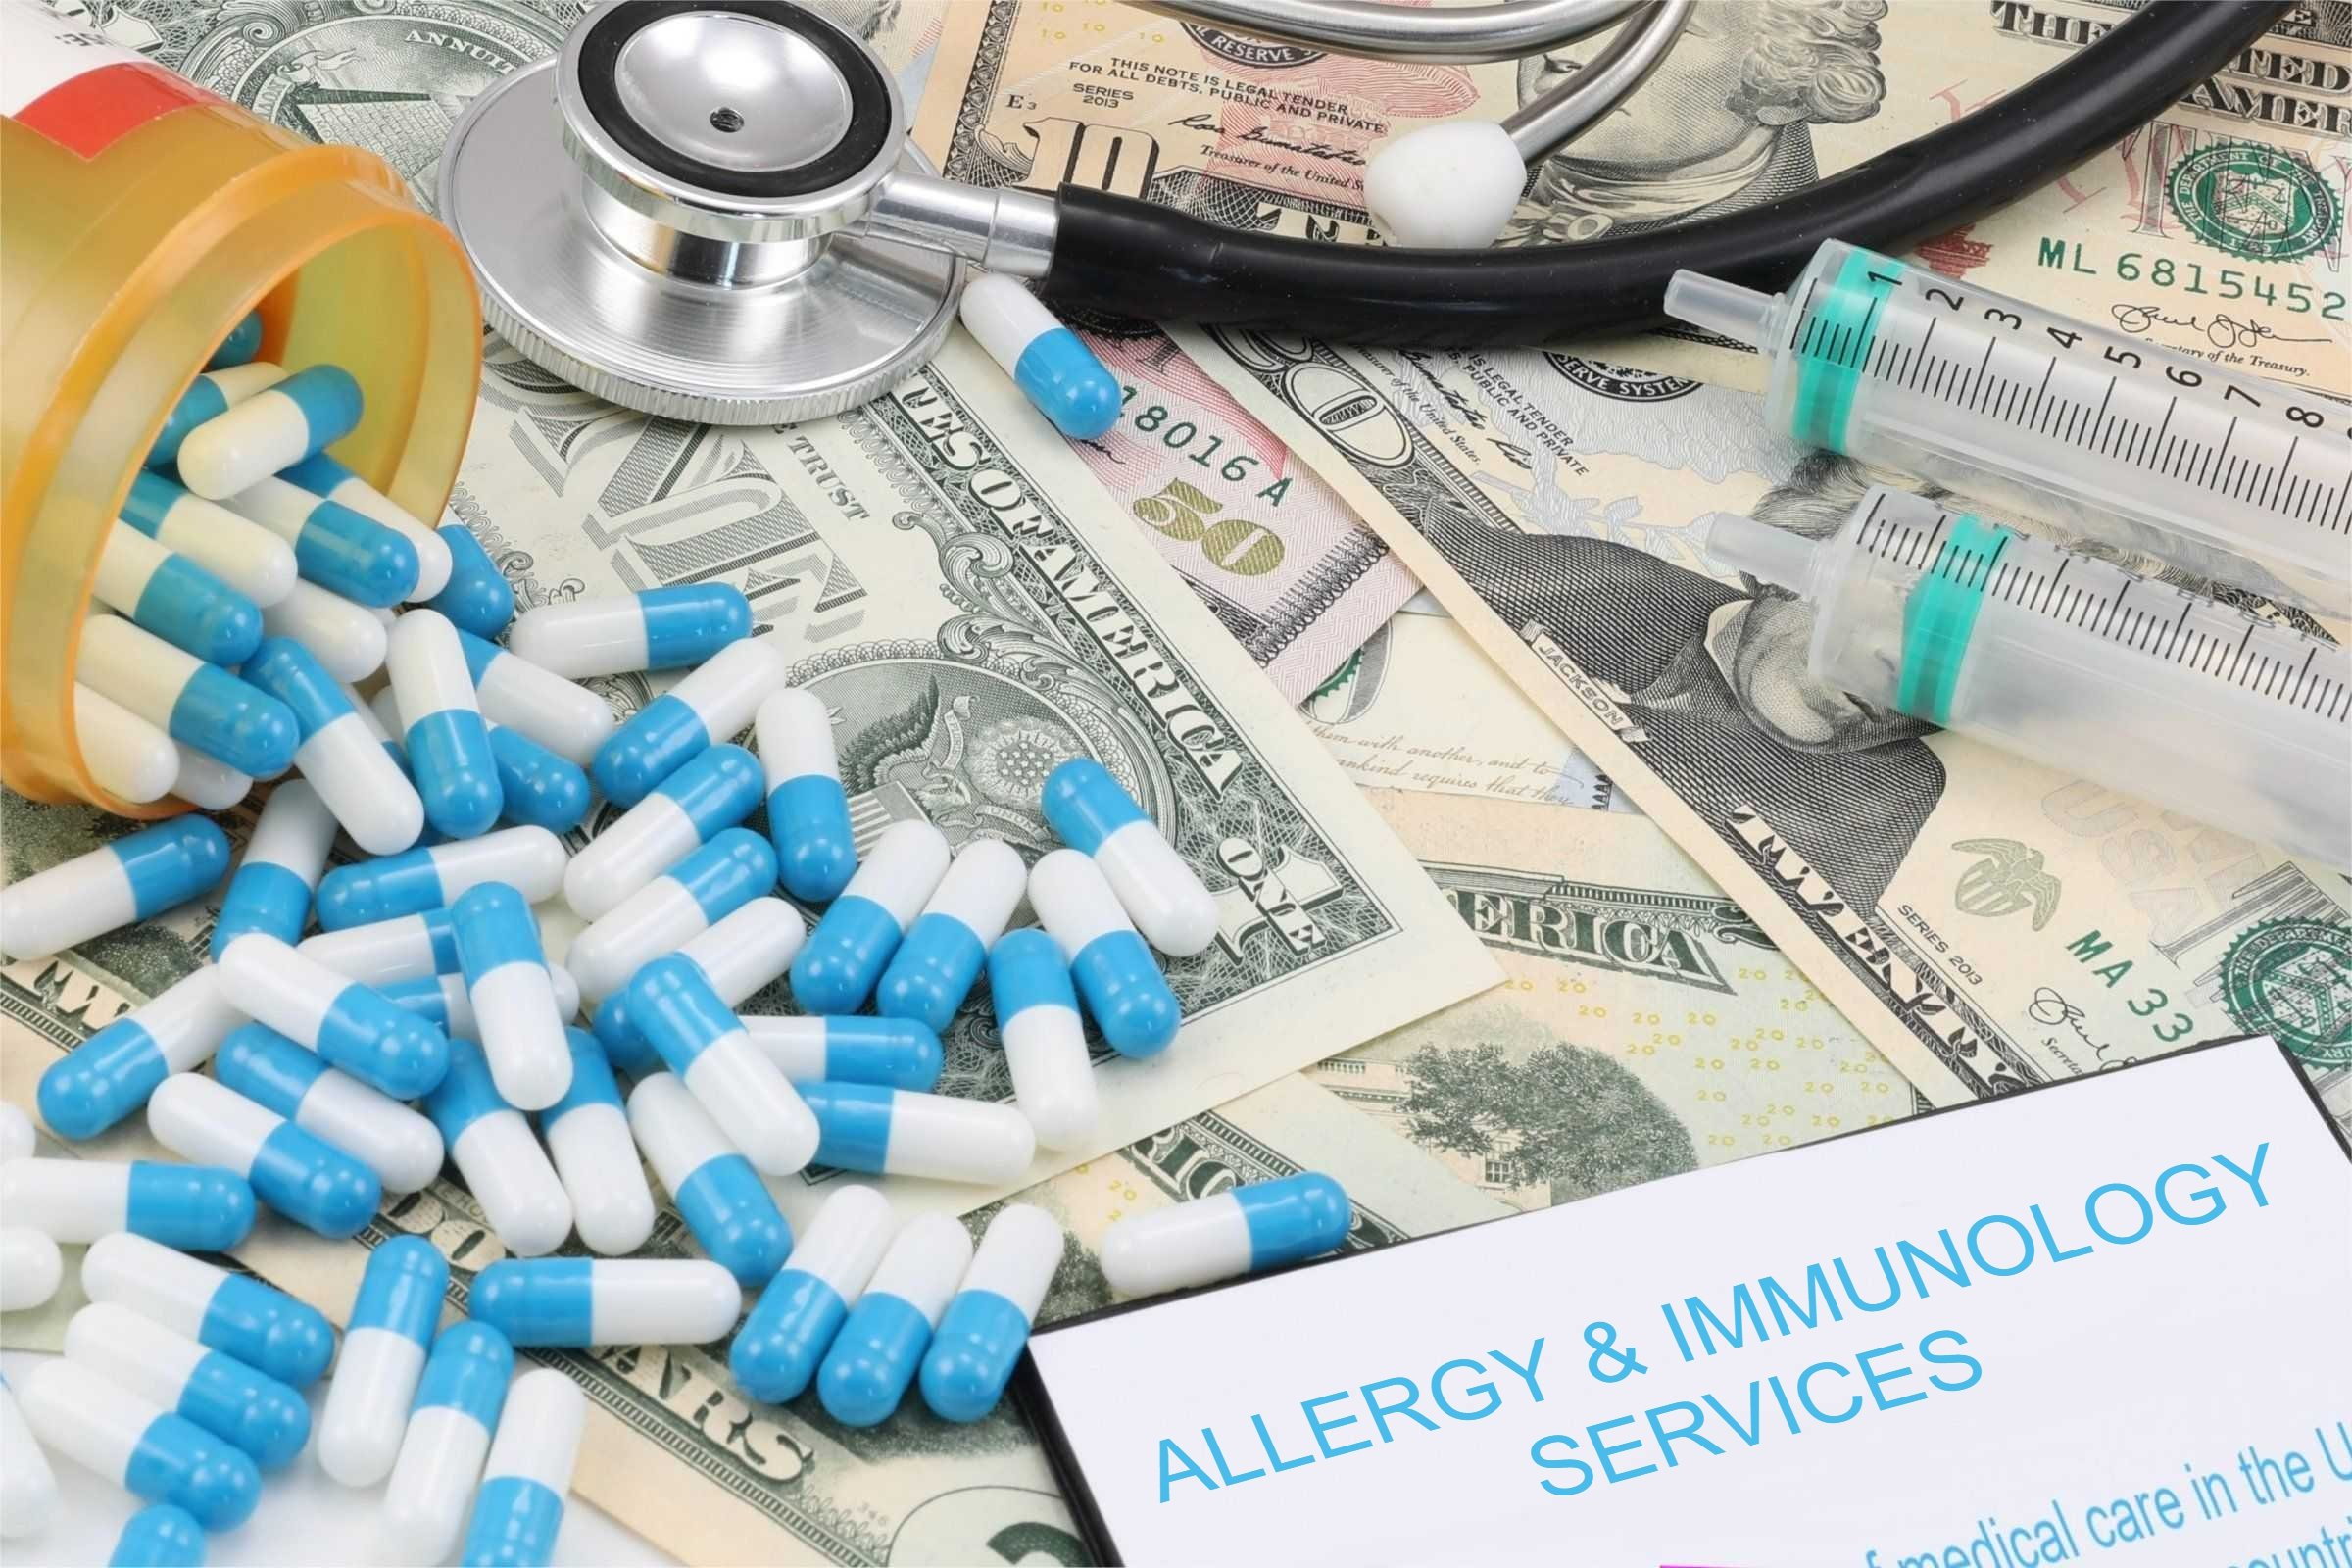 Allergy and Immunology Services